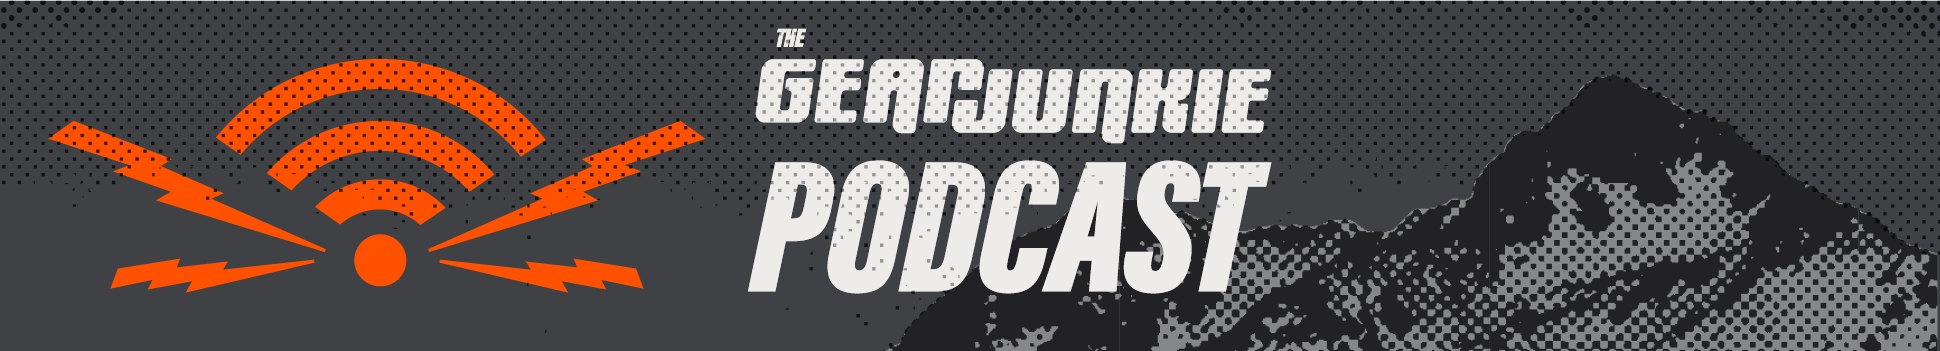 The GearJunkie Podcast Header